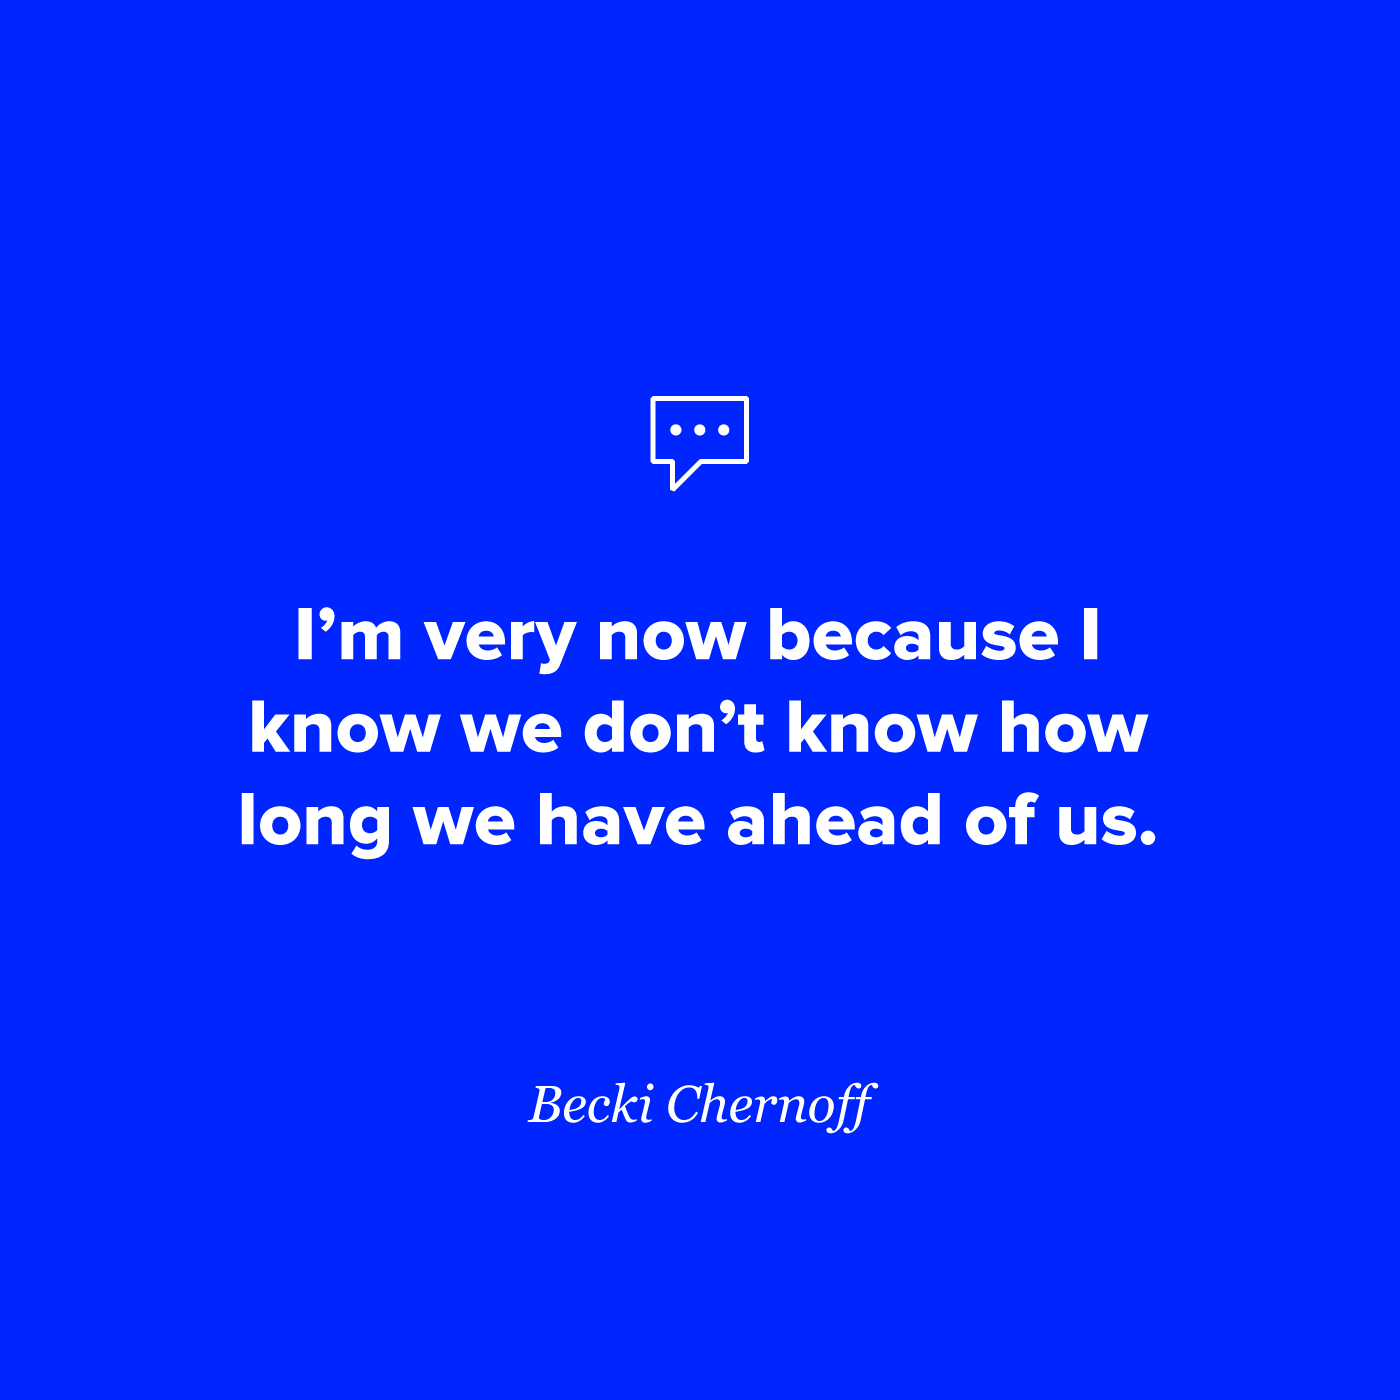 BirdTalks_BeckiChernoff_Quote-Blue.jpg